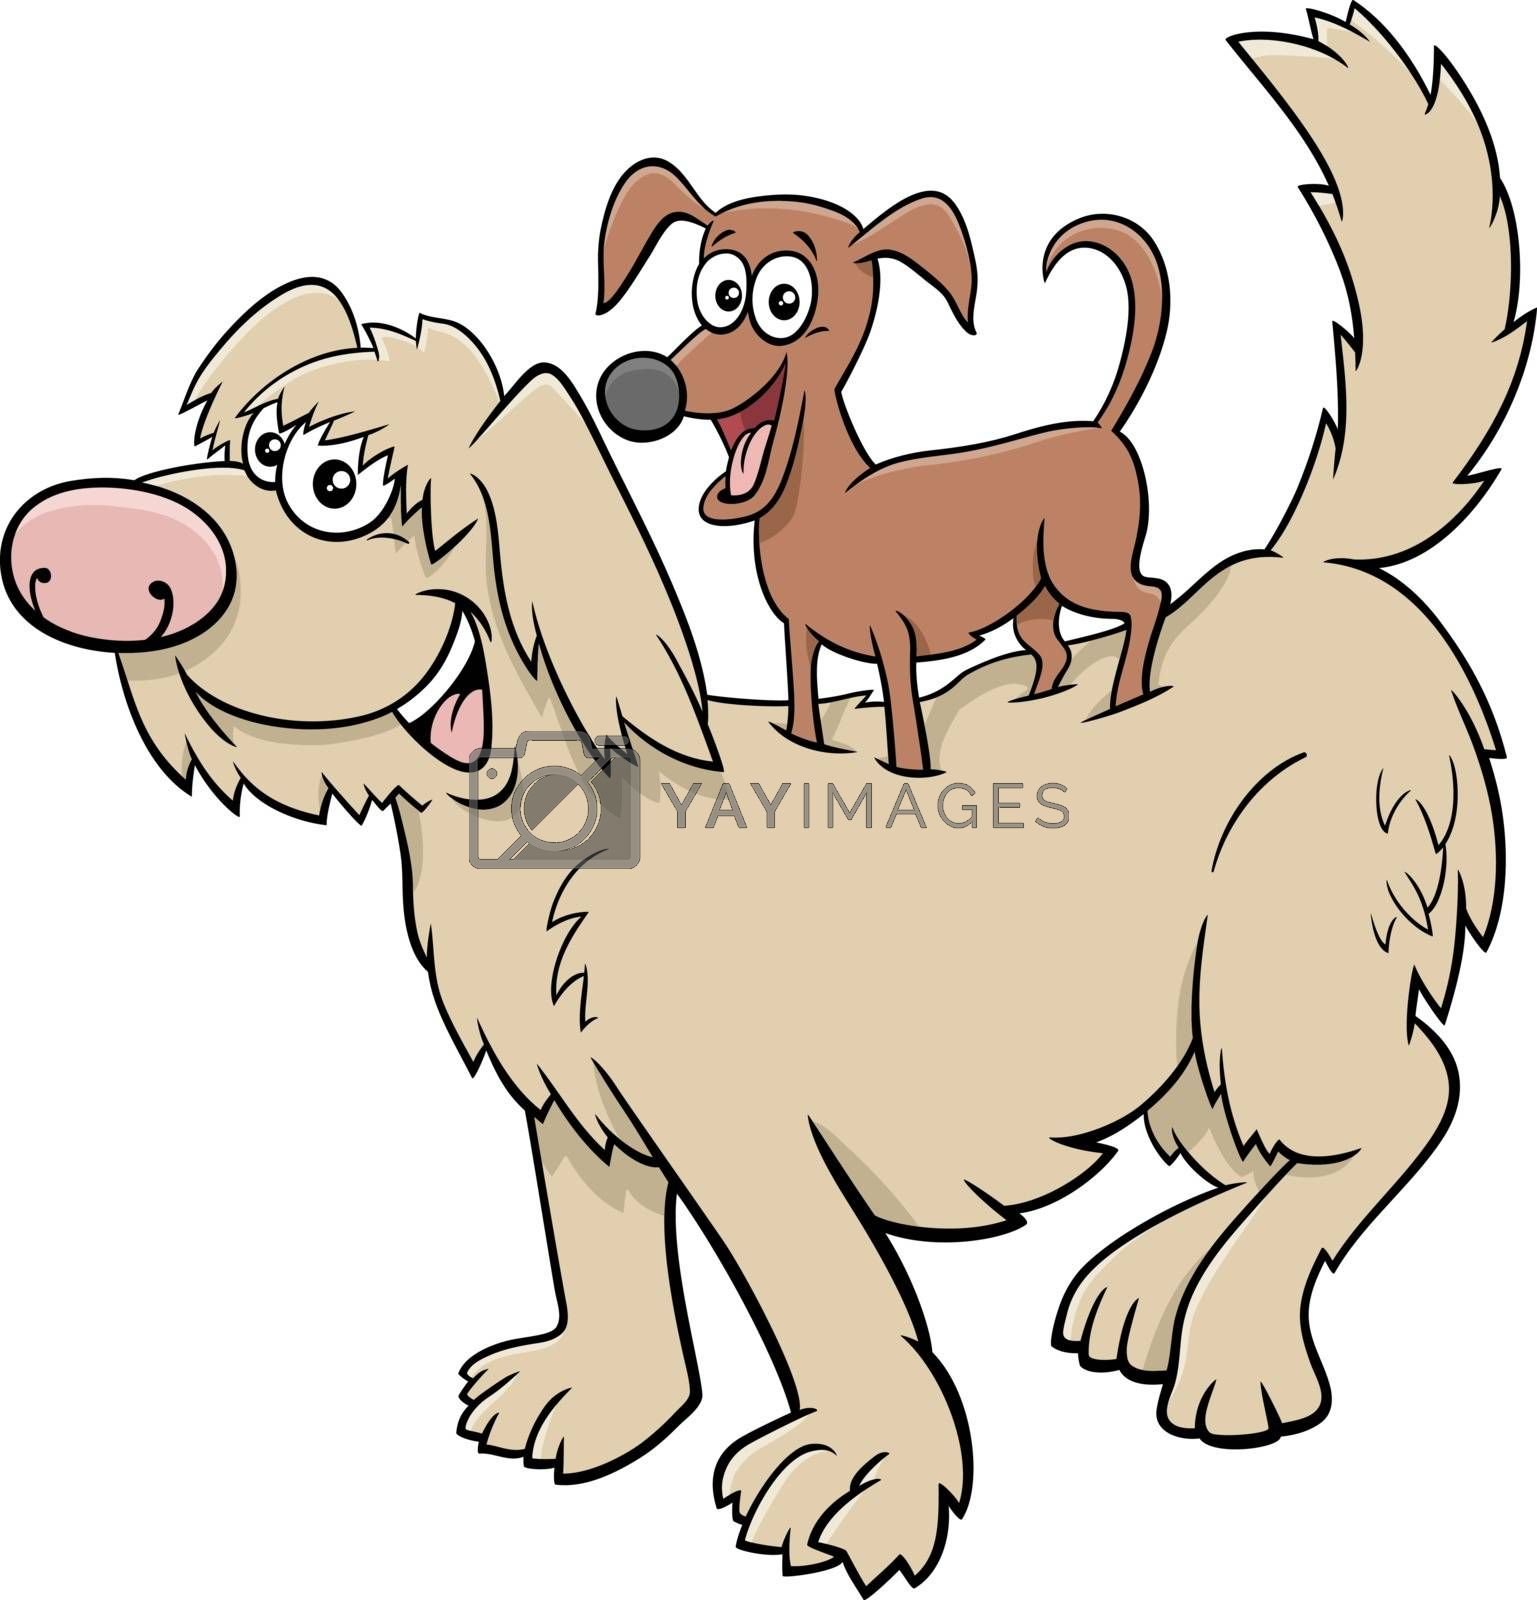 Cartoon illustration of funny little dog on big one comic characters